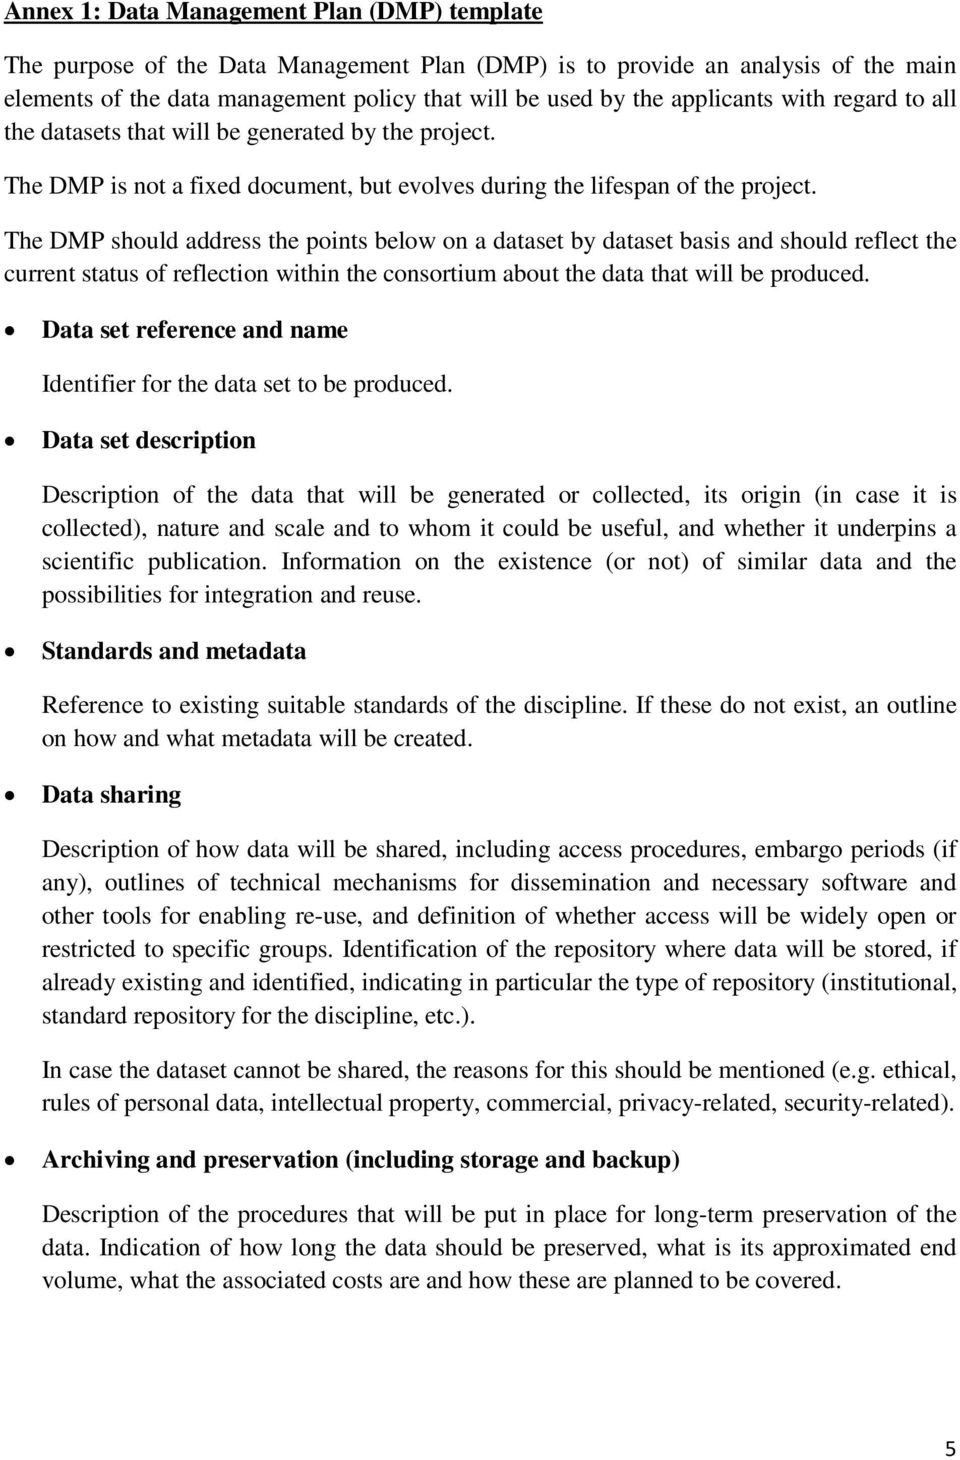 The DMP should address the points below on a dataset by dataset basis and should reflect the current status of reflection within the consortium about the data that will be produced.